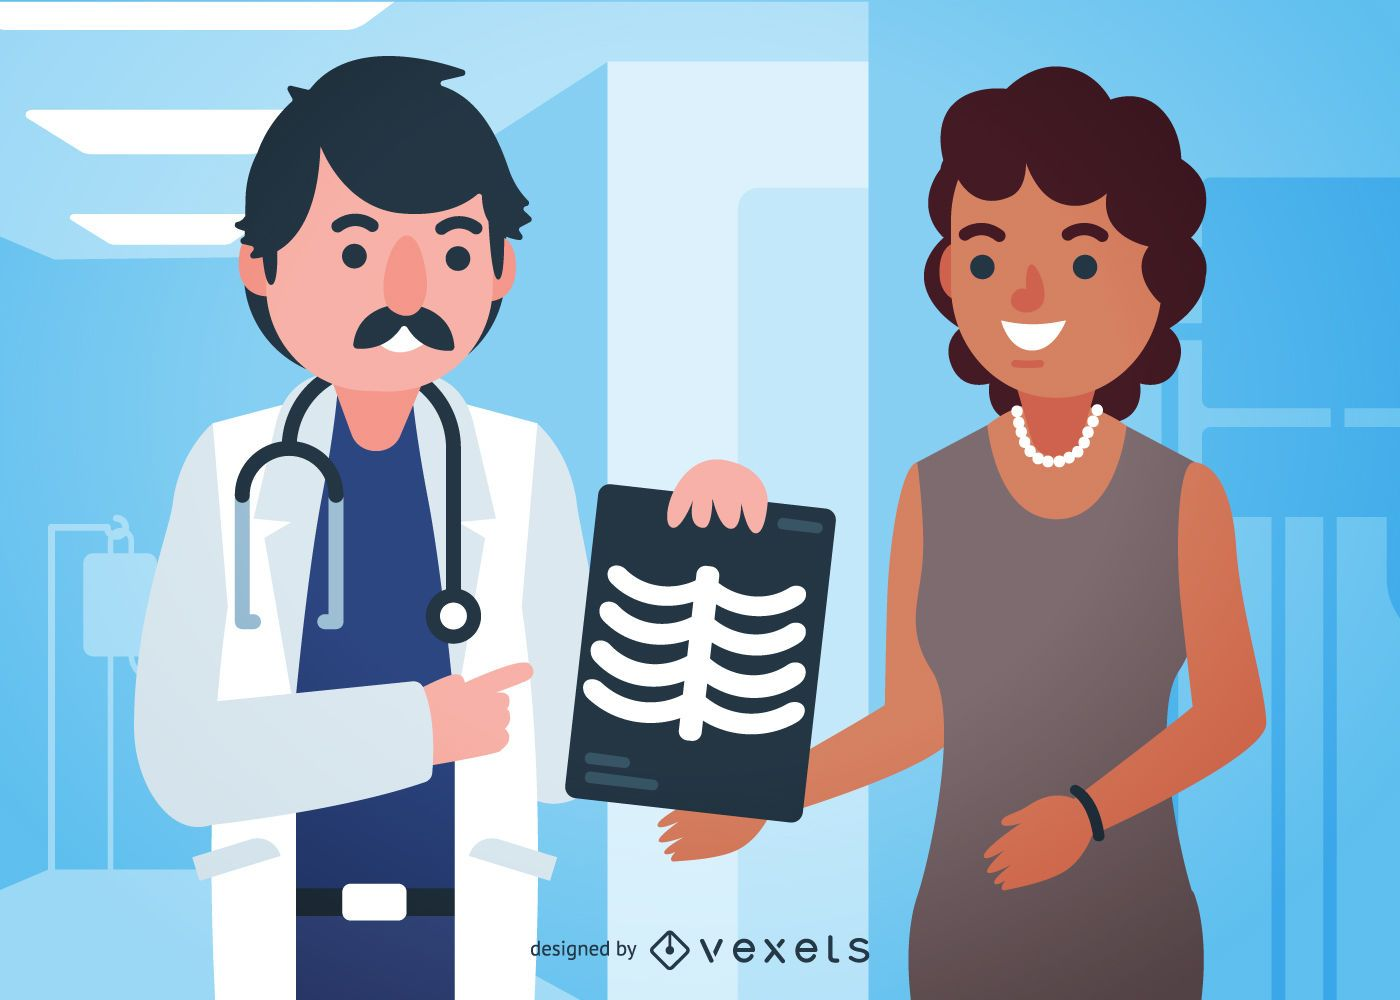 Doctor illustration with x-rays and patient